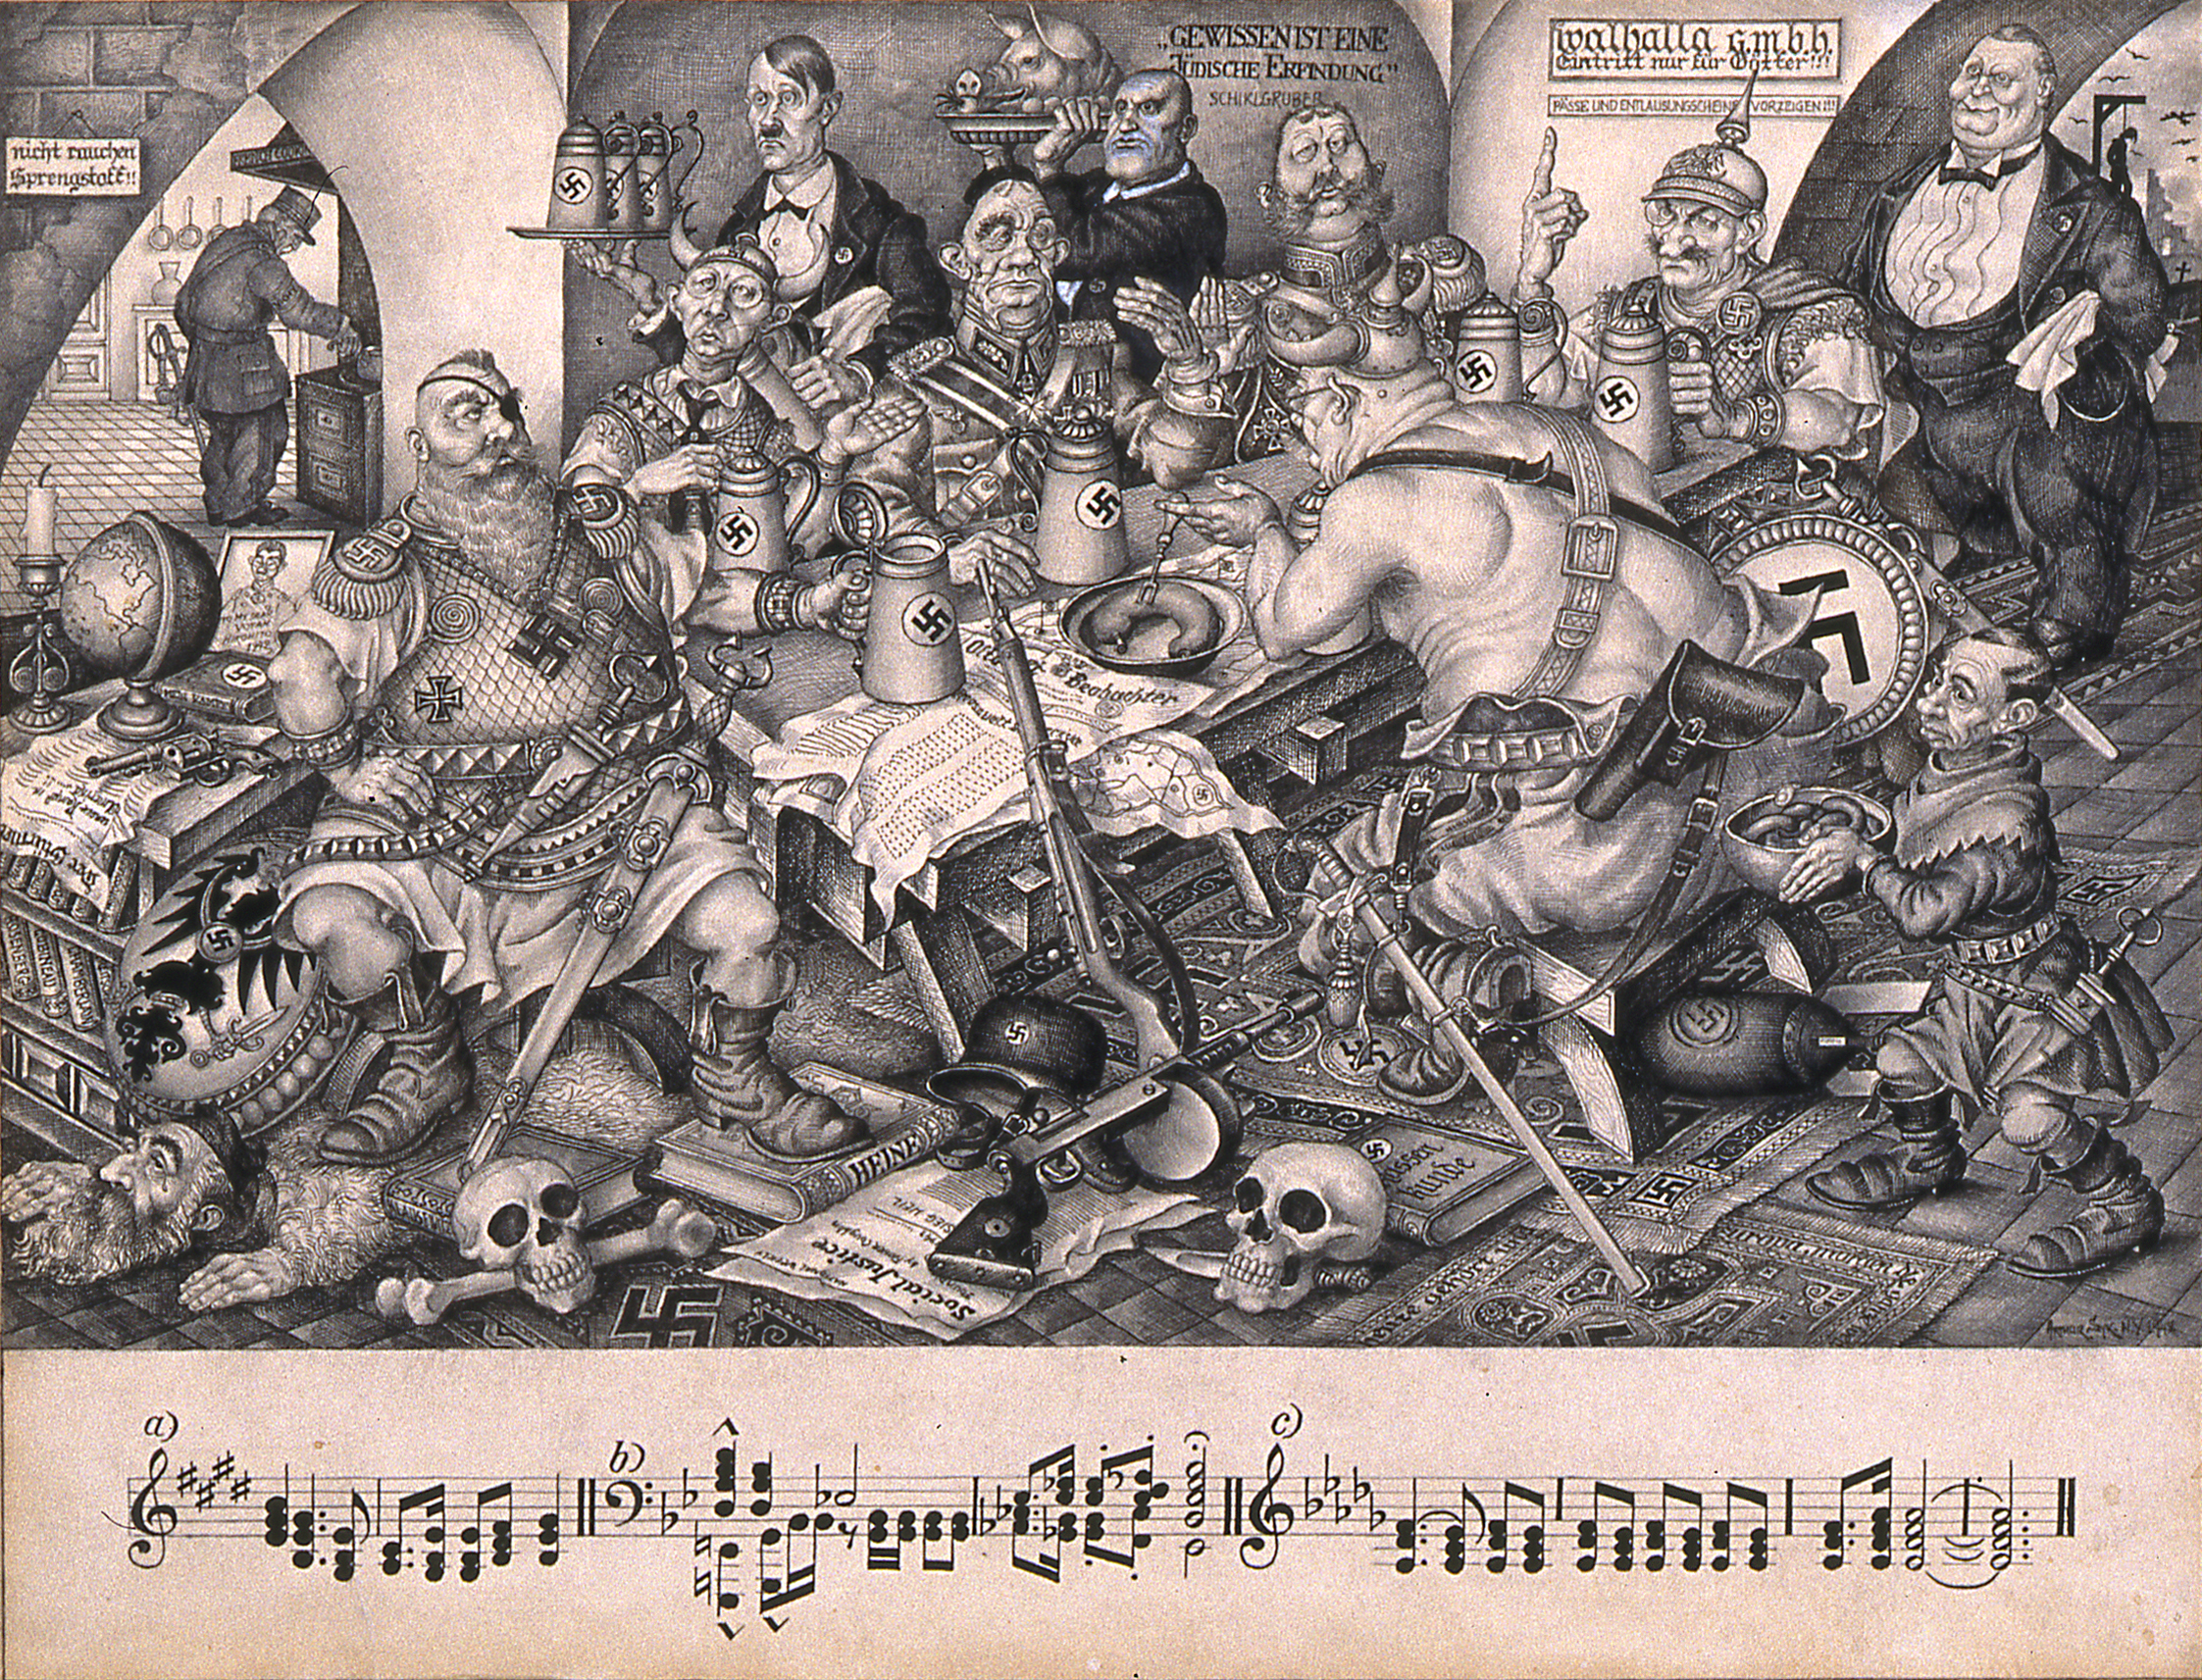 Arthur Szyk The Nibelungen Series C Valhalla C New York